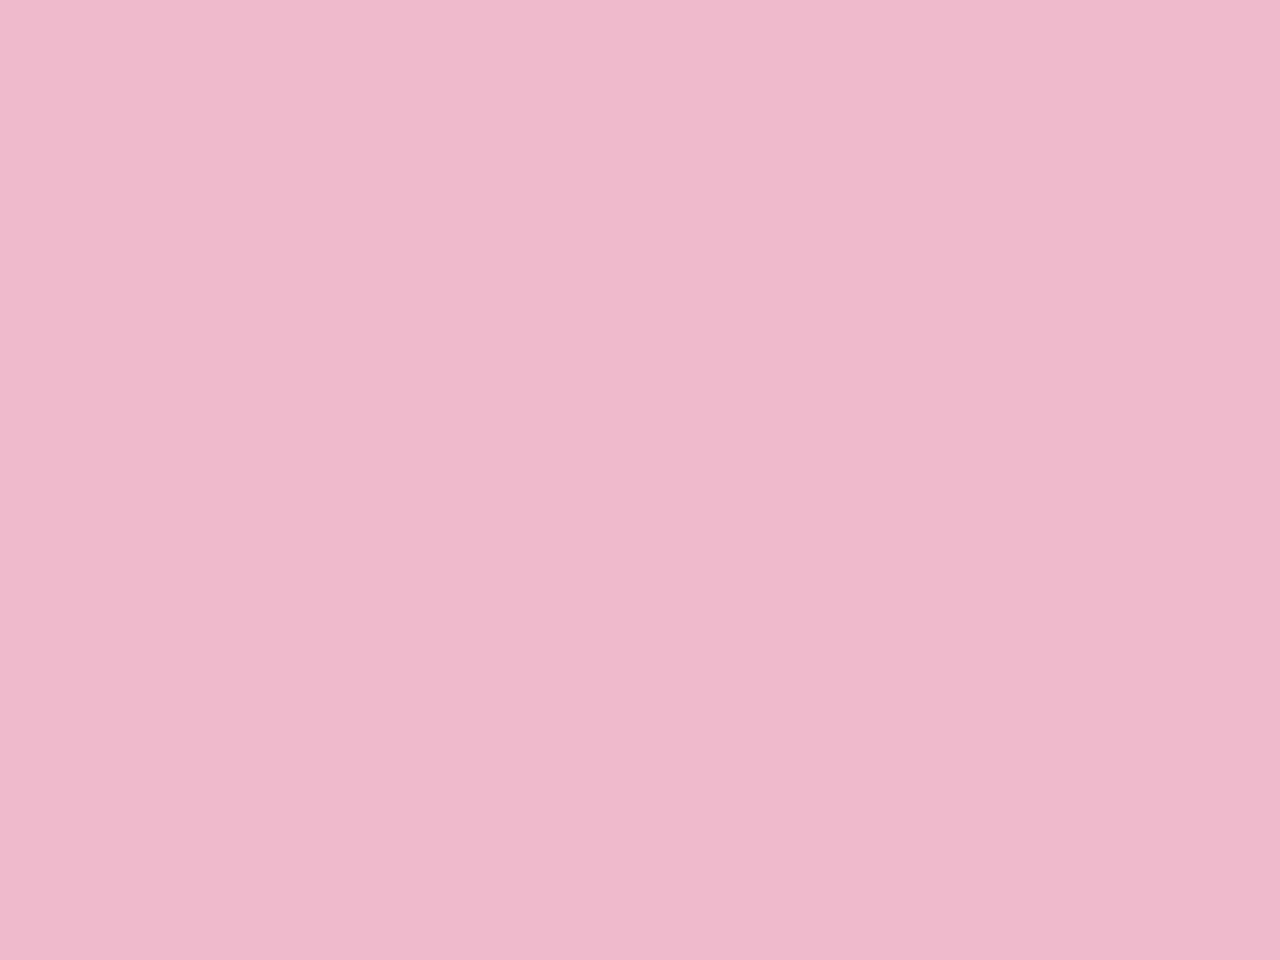 1280x960 Cameo Pink Solid Color Background